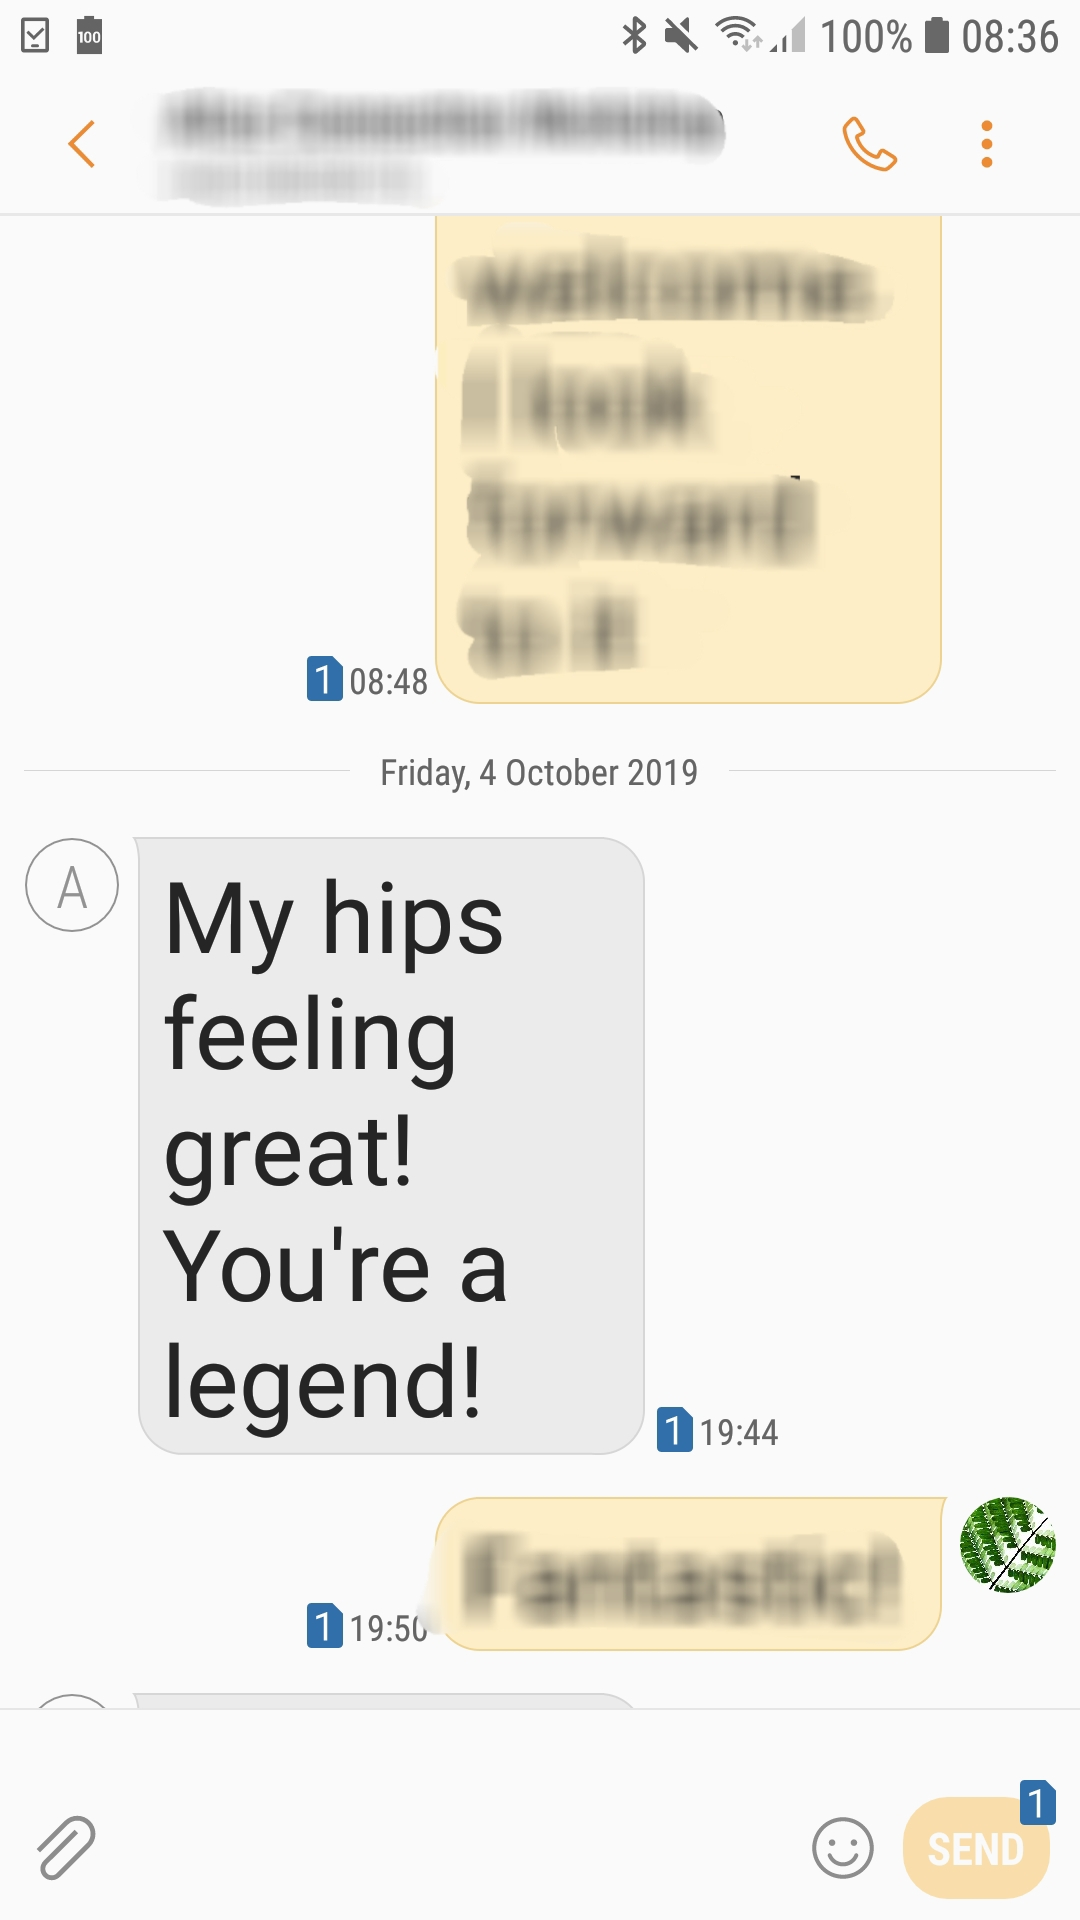 testimonial from my session on hip pain